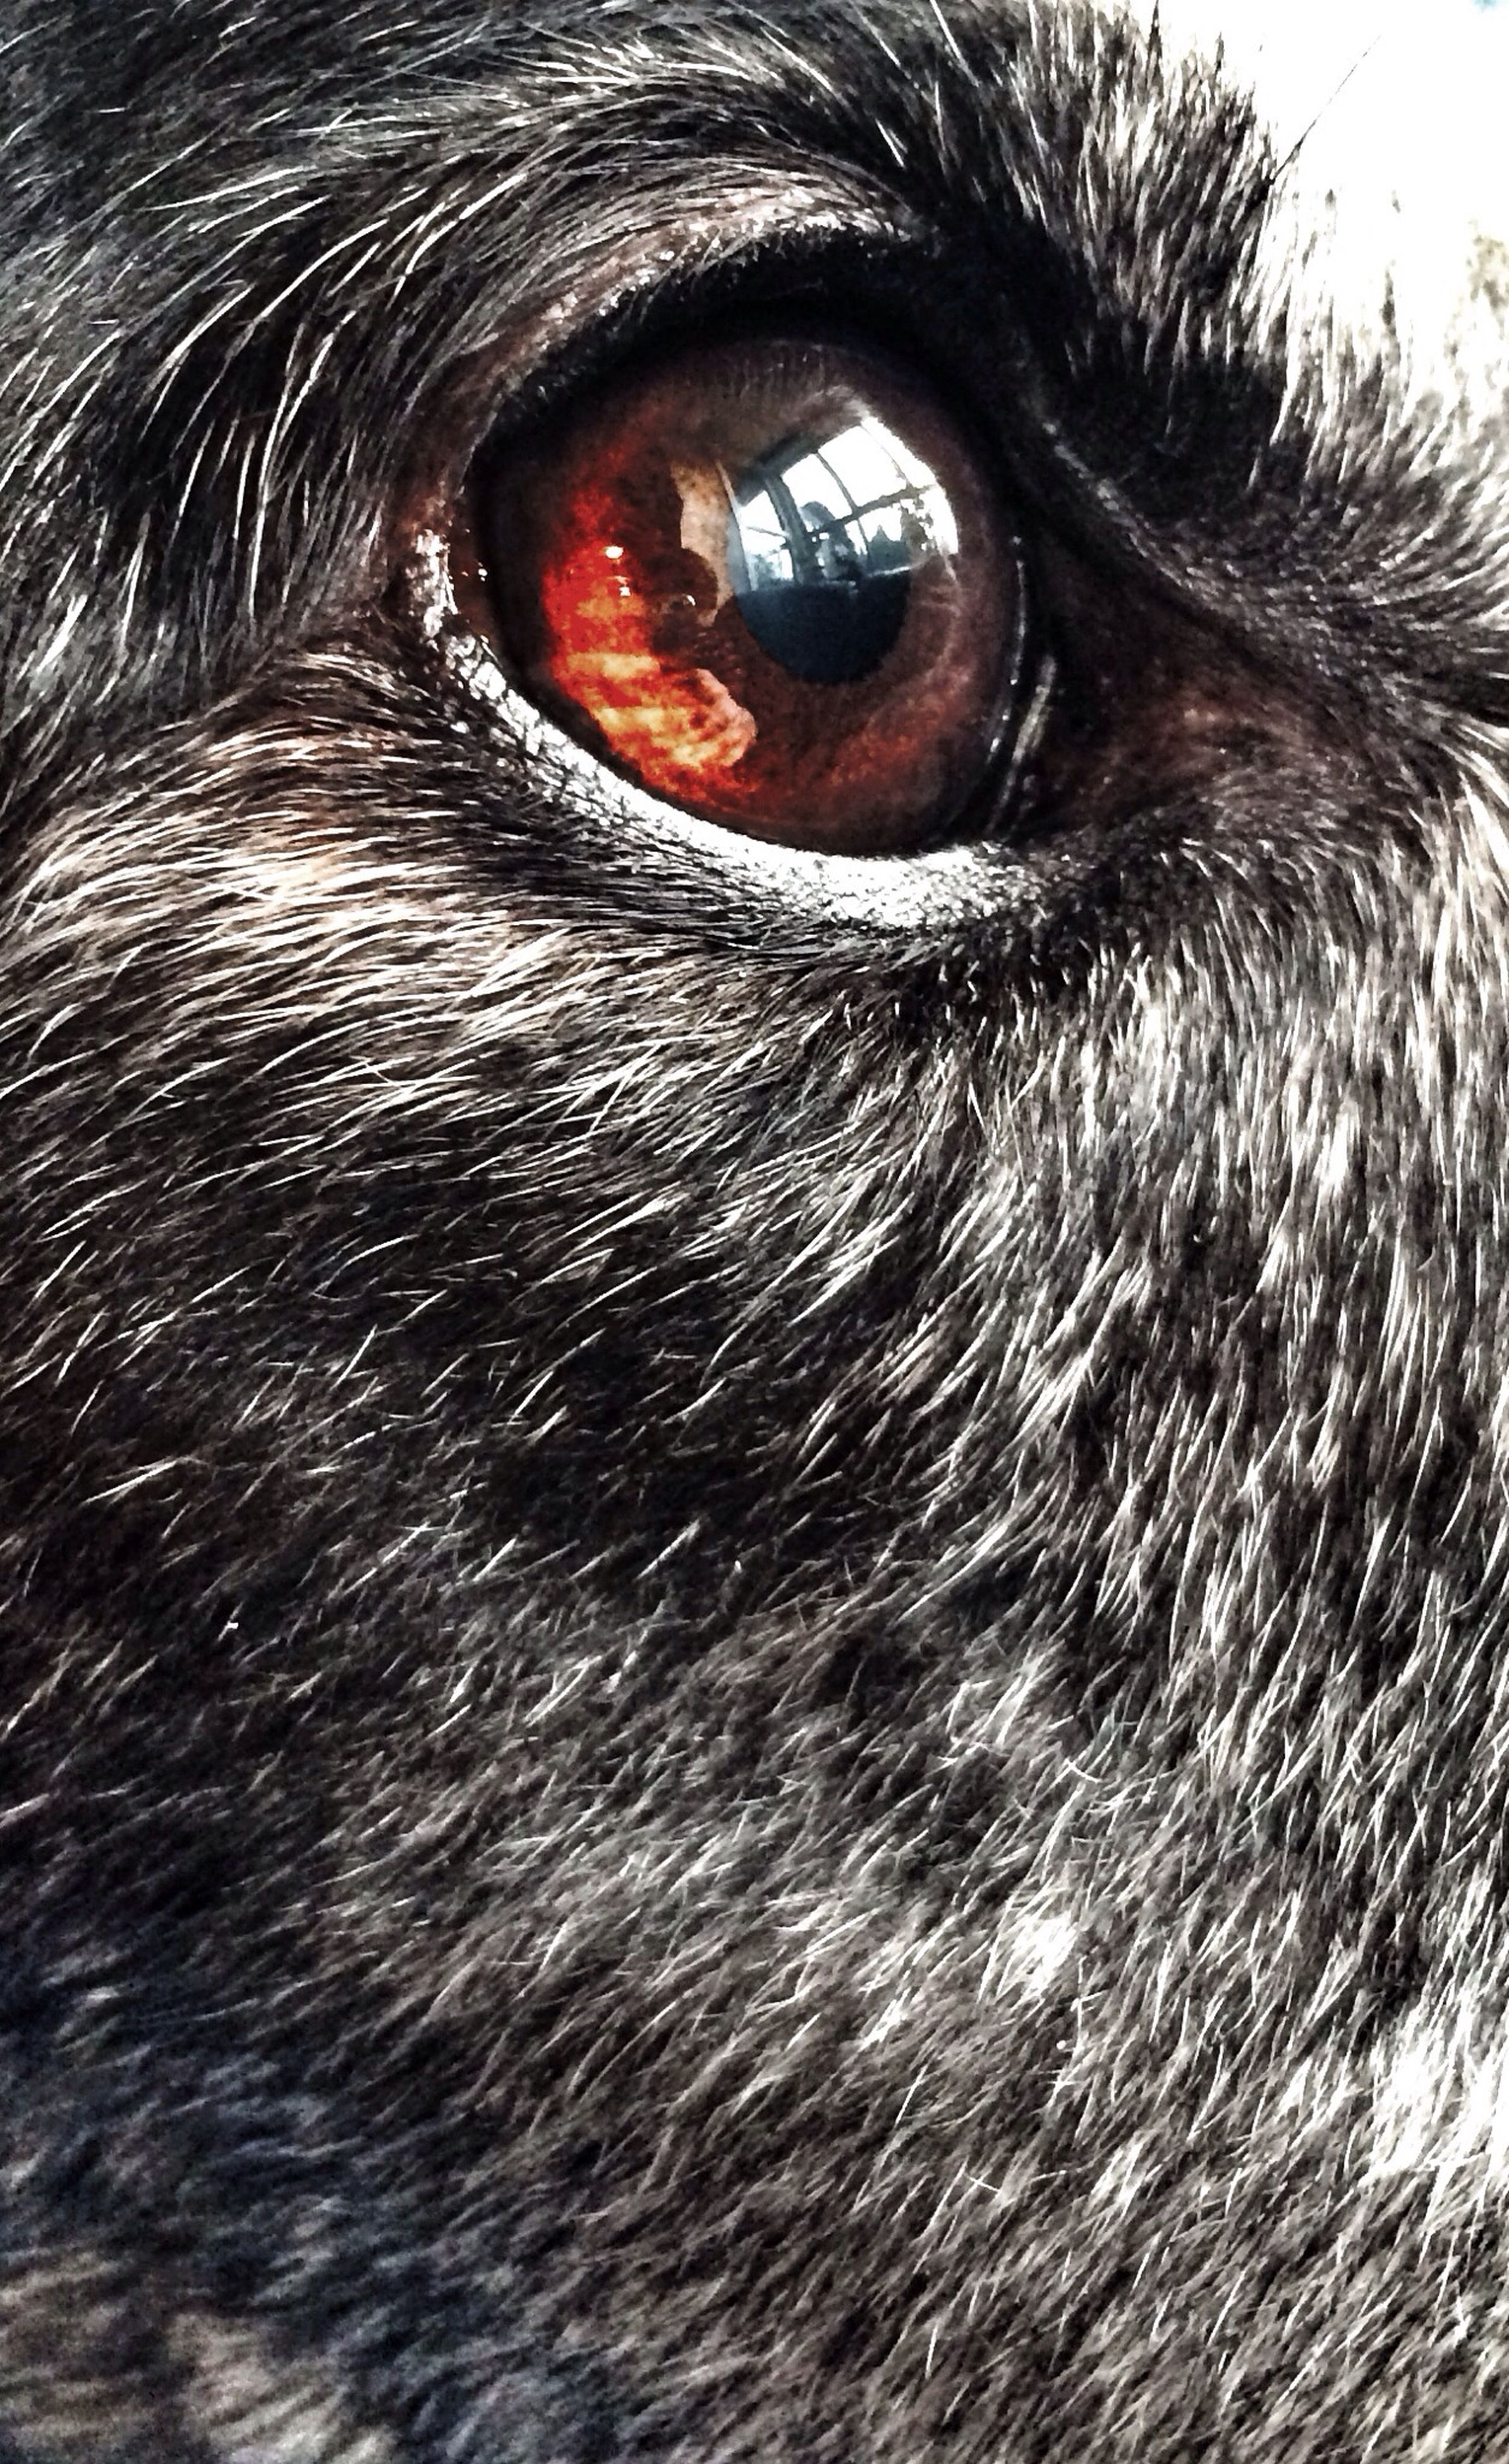 close-up, one animal, looking at camera, full frame, portrait, animal eye, human eye, backgrounds, eyesight, animal themes, extreme close-up, part of, animal body part, animal head, pets, extreme close up, eyelash, animal hair, detail, staring